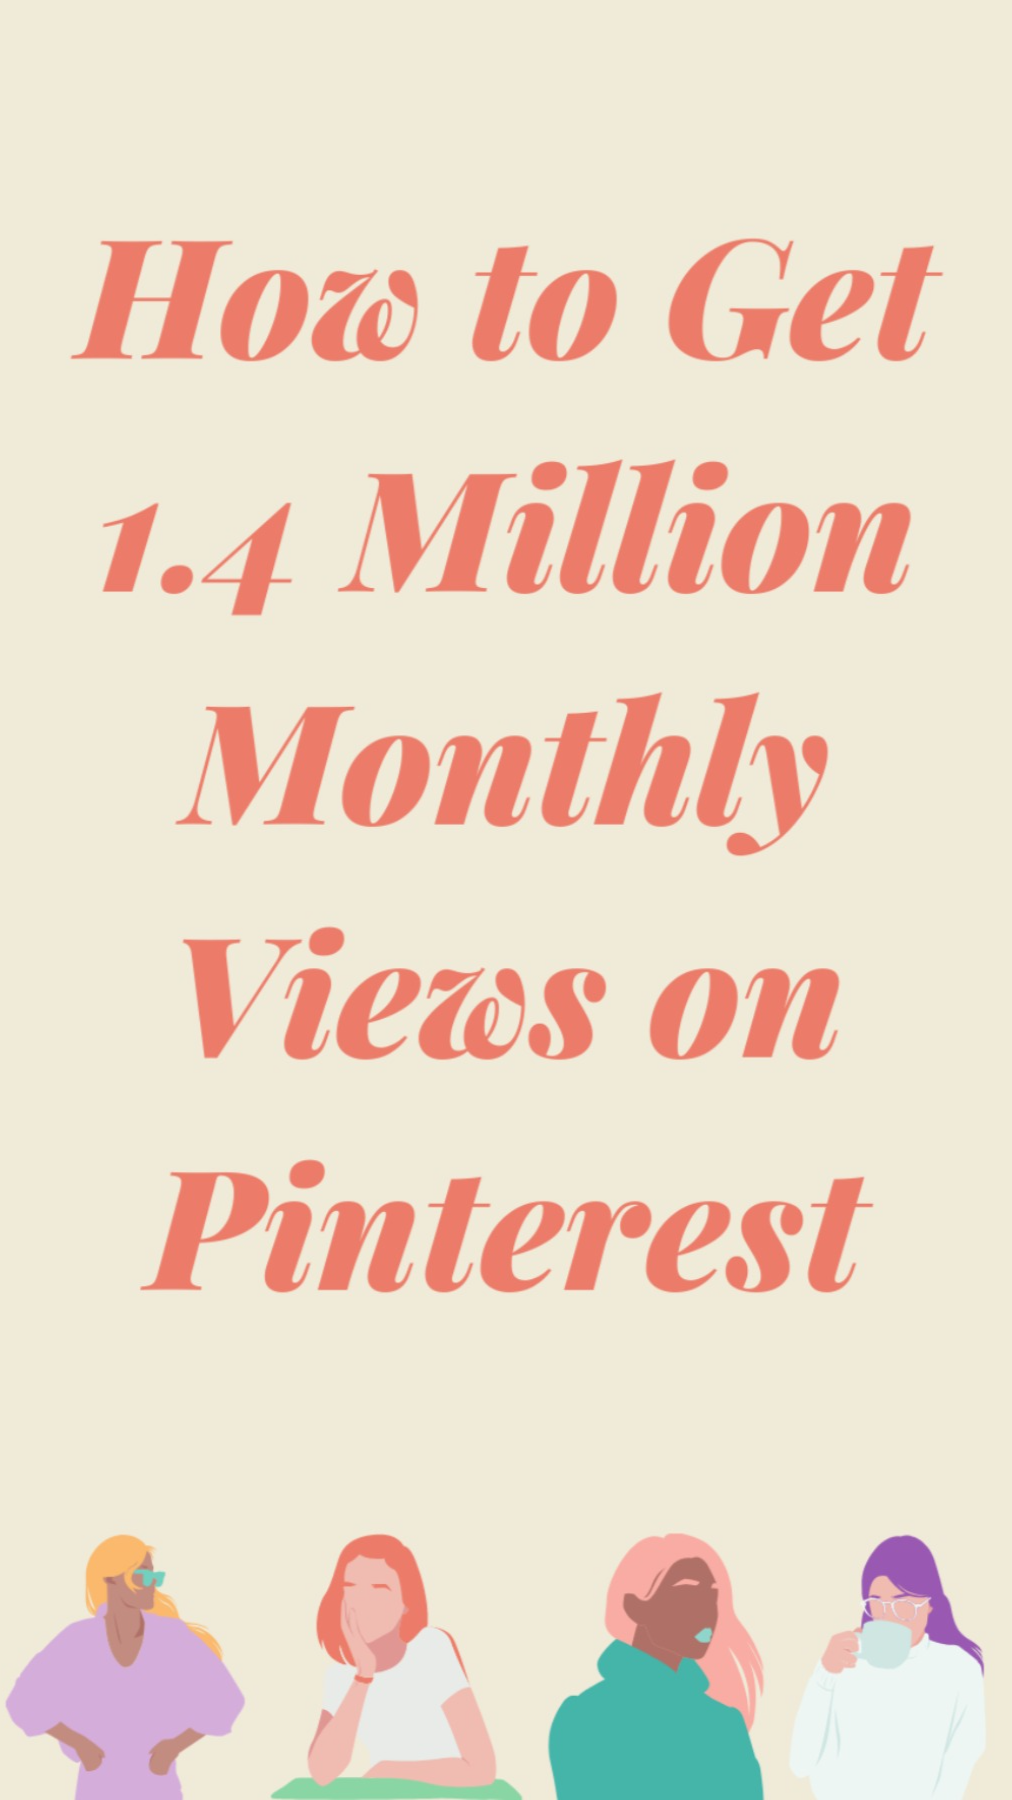 c91168b4ce018834d152420ca02f8e21 - How to Get Over 1 Million Monthly Views on Pinterest - work-from-home